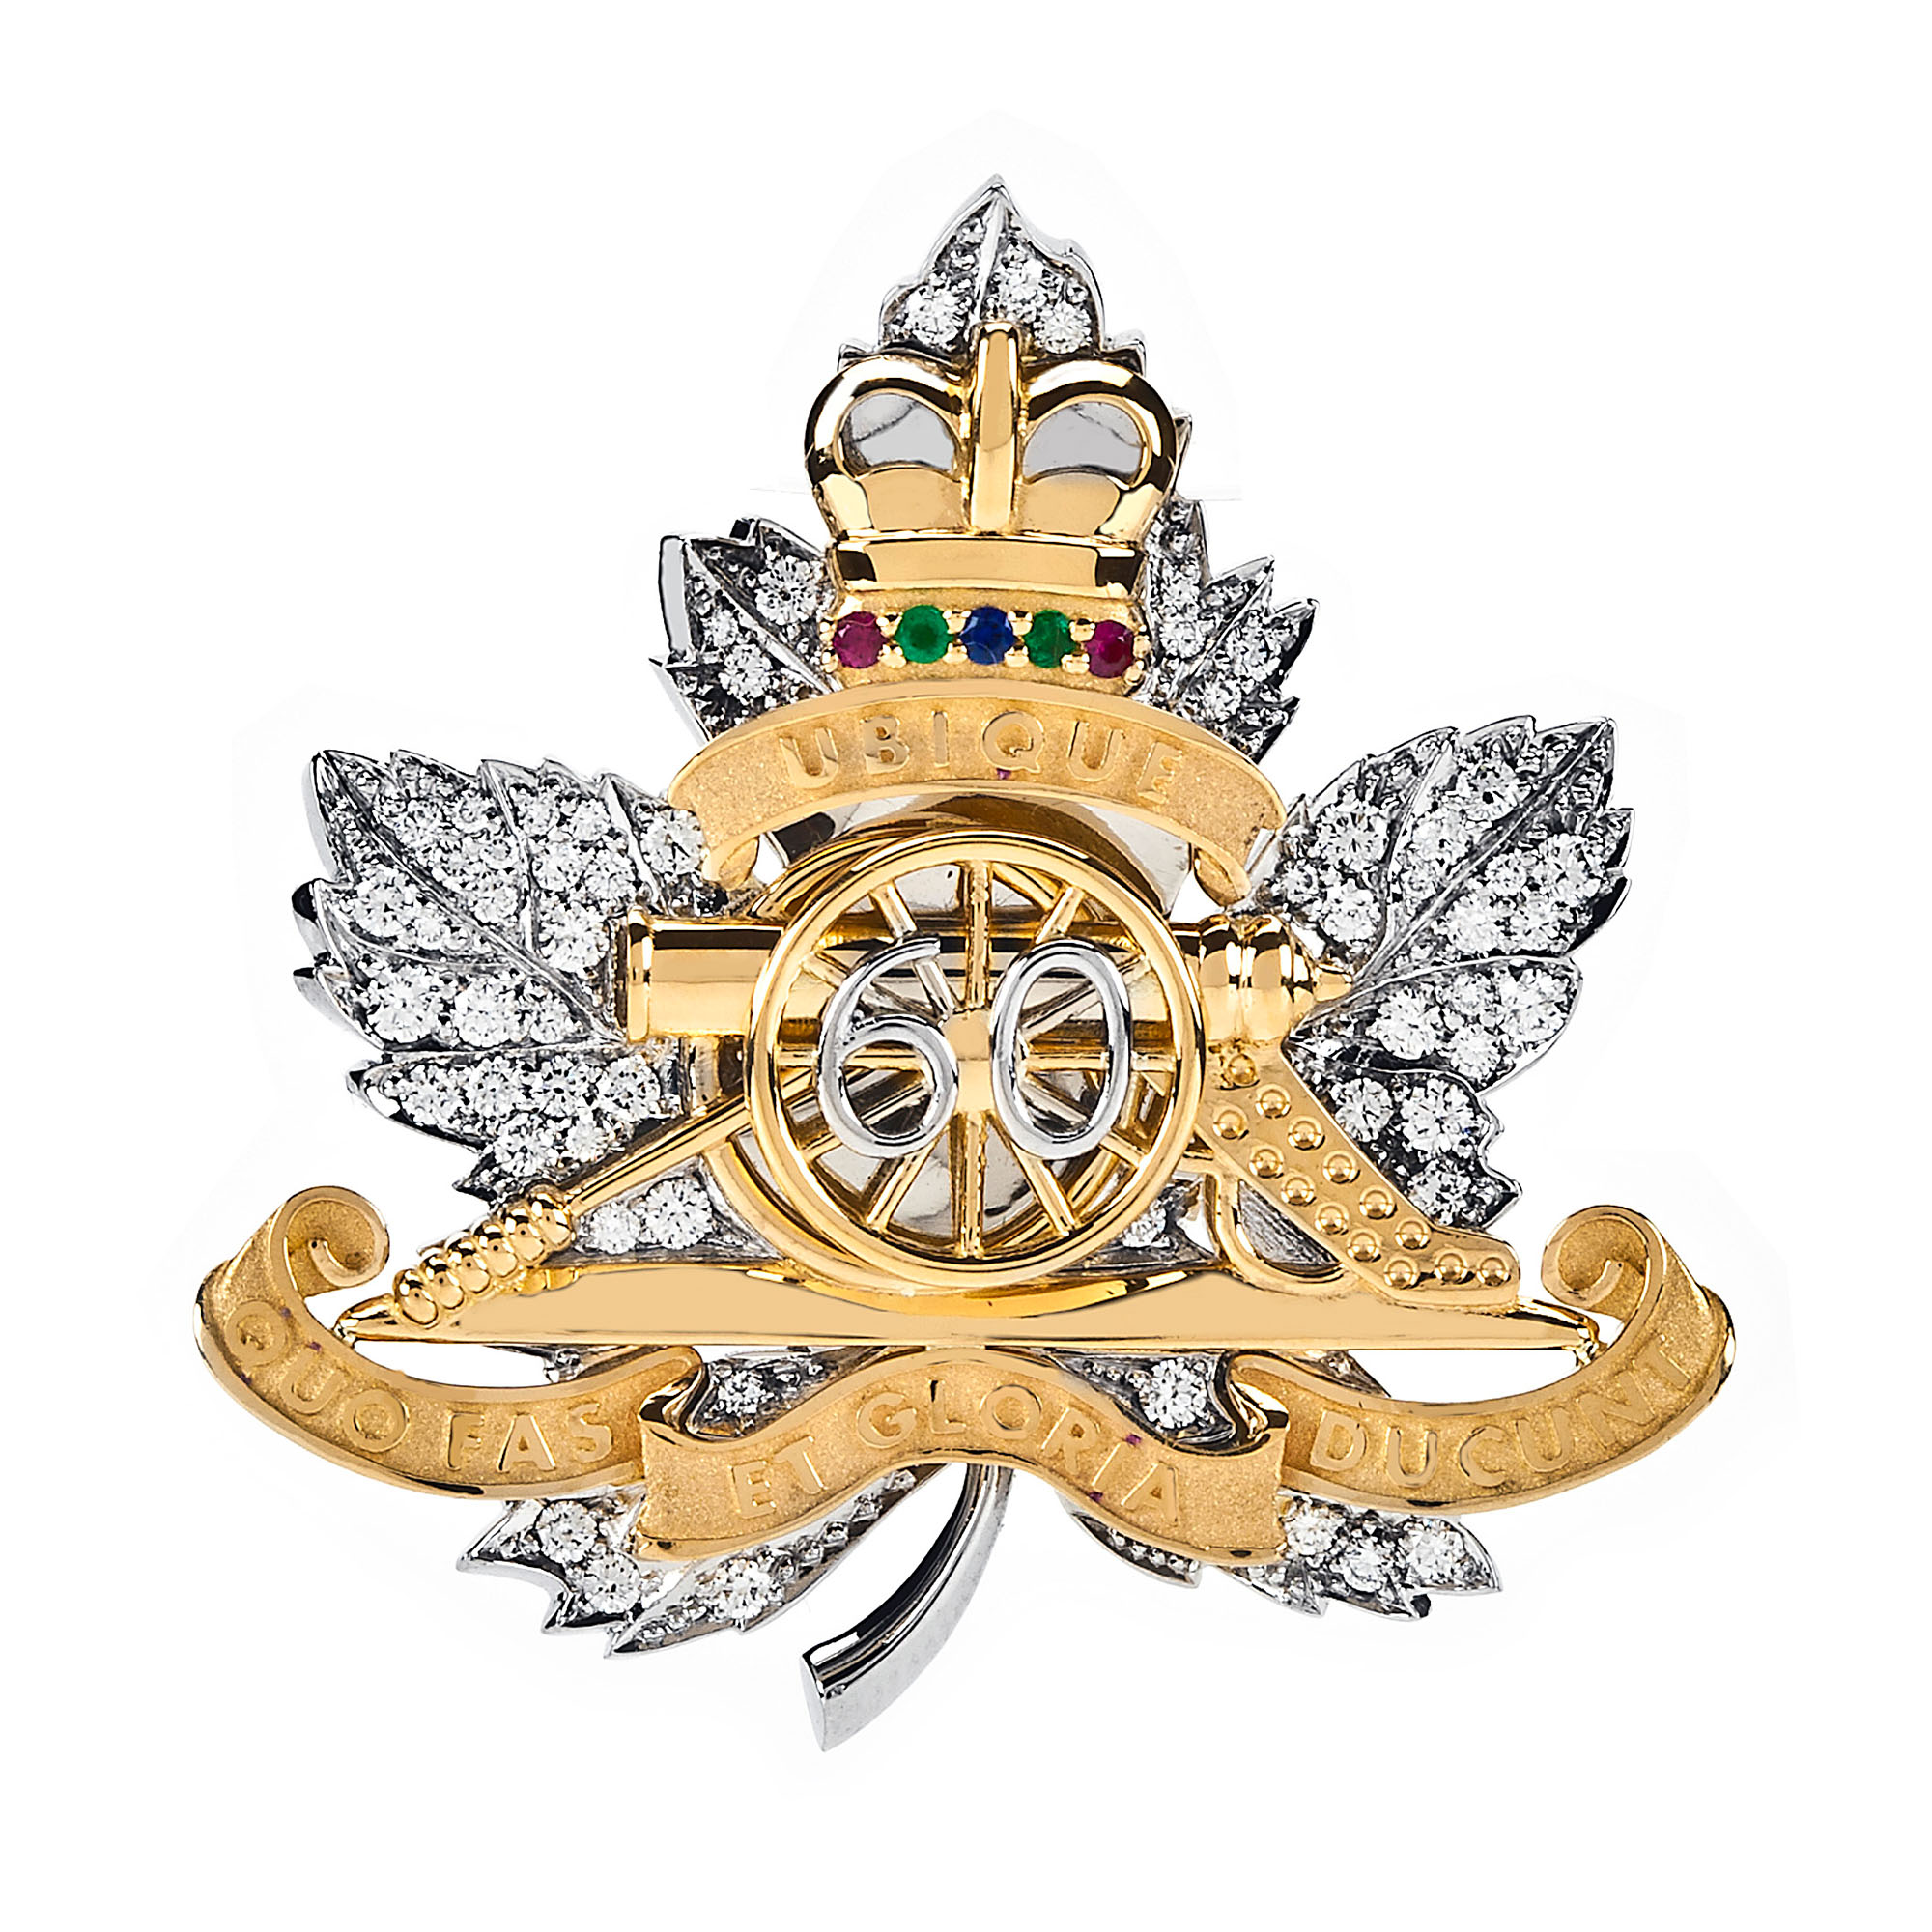 Birks, Canada's leading manufacturer and retailer of fine jewellery, has produced a diamond brooch which has been presented to Her Majesty the Queen, Captain General of the Royal Regiment of Canadian Artillery yesterday, a gift from the Regiment in celebration of her 60th anniversary of service as Captain General. (CNW Group/BIRKS & MAYORS INC.)